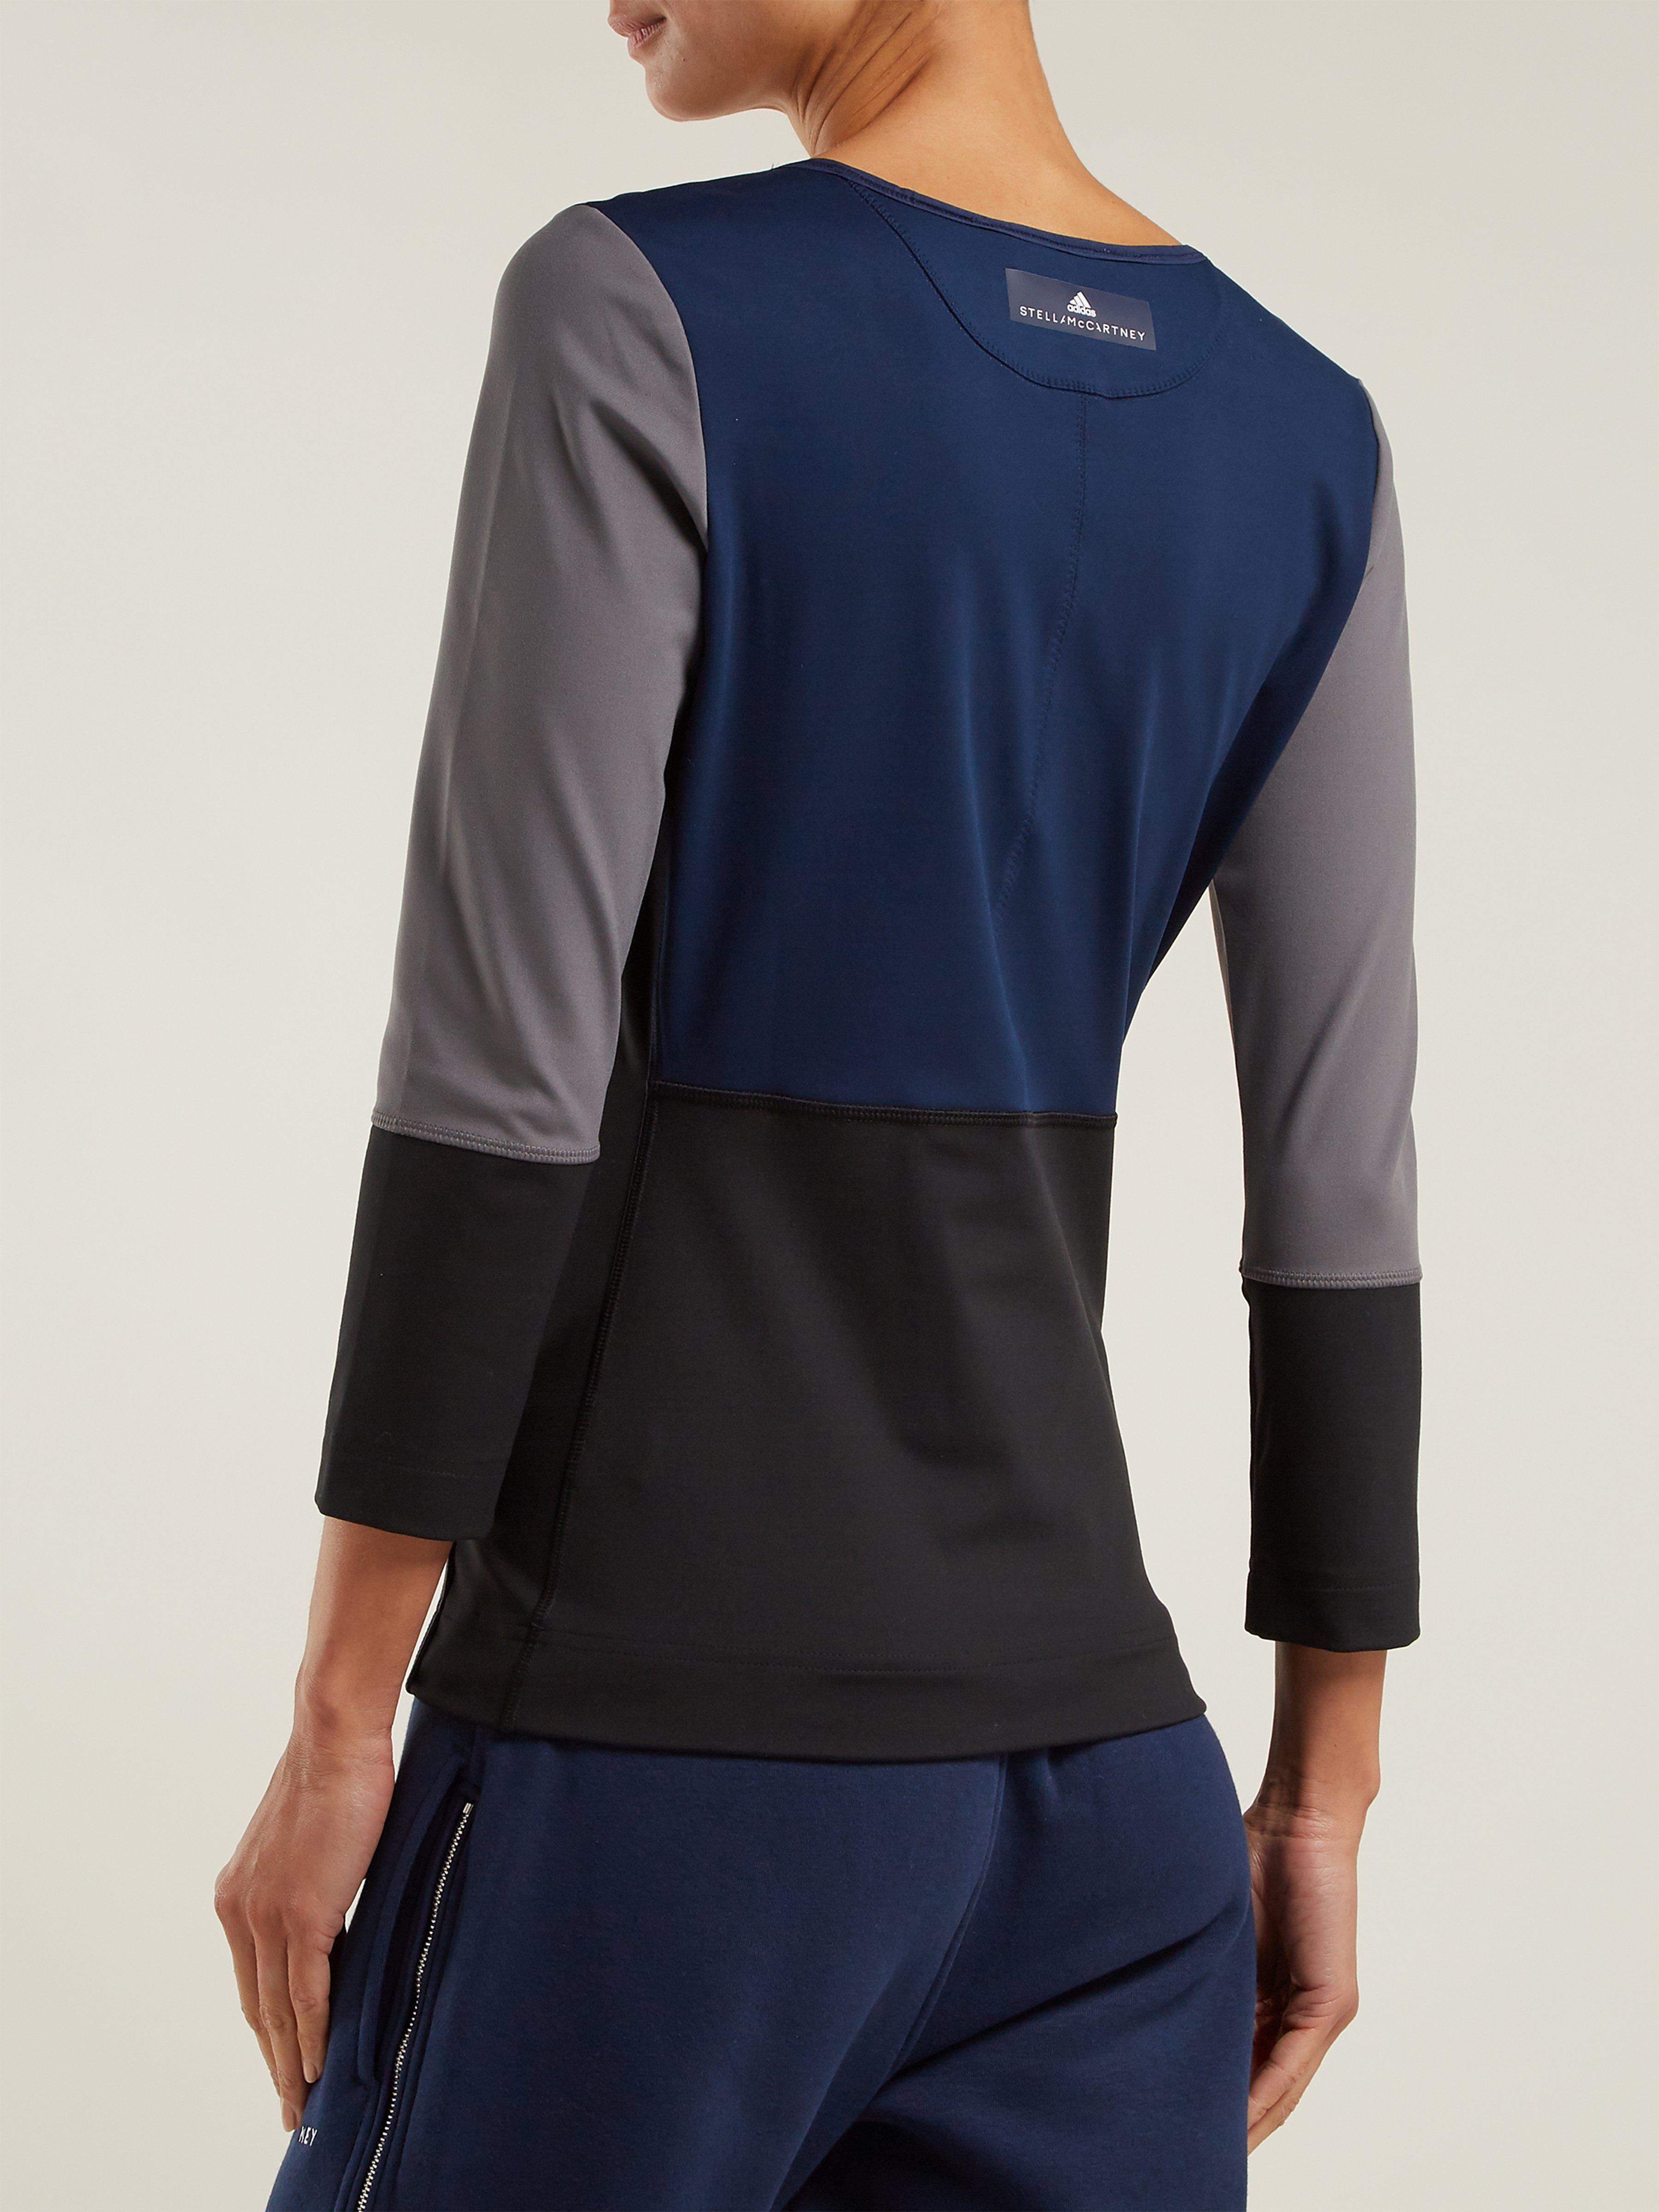 85cf318b9b5aa6 adidas By Stella McCartney Blue, Black And Gray Yoga Comfort Top in ...